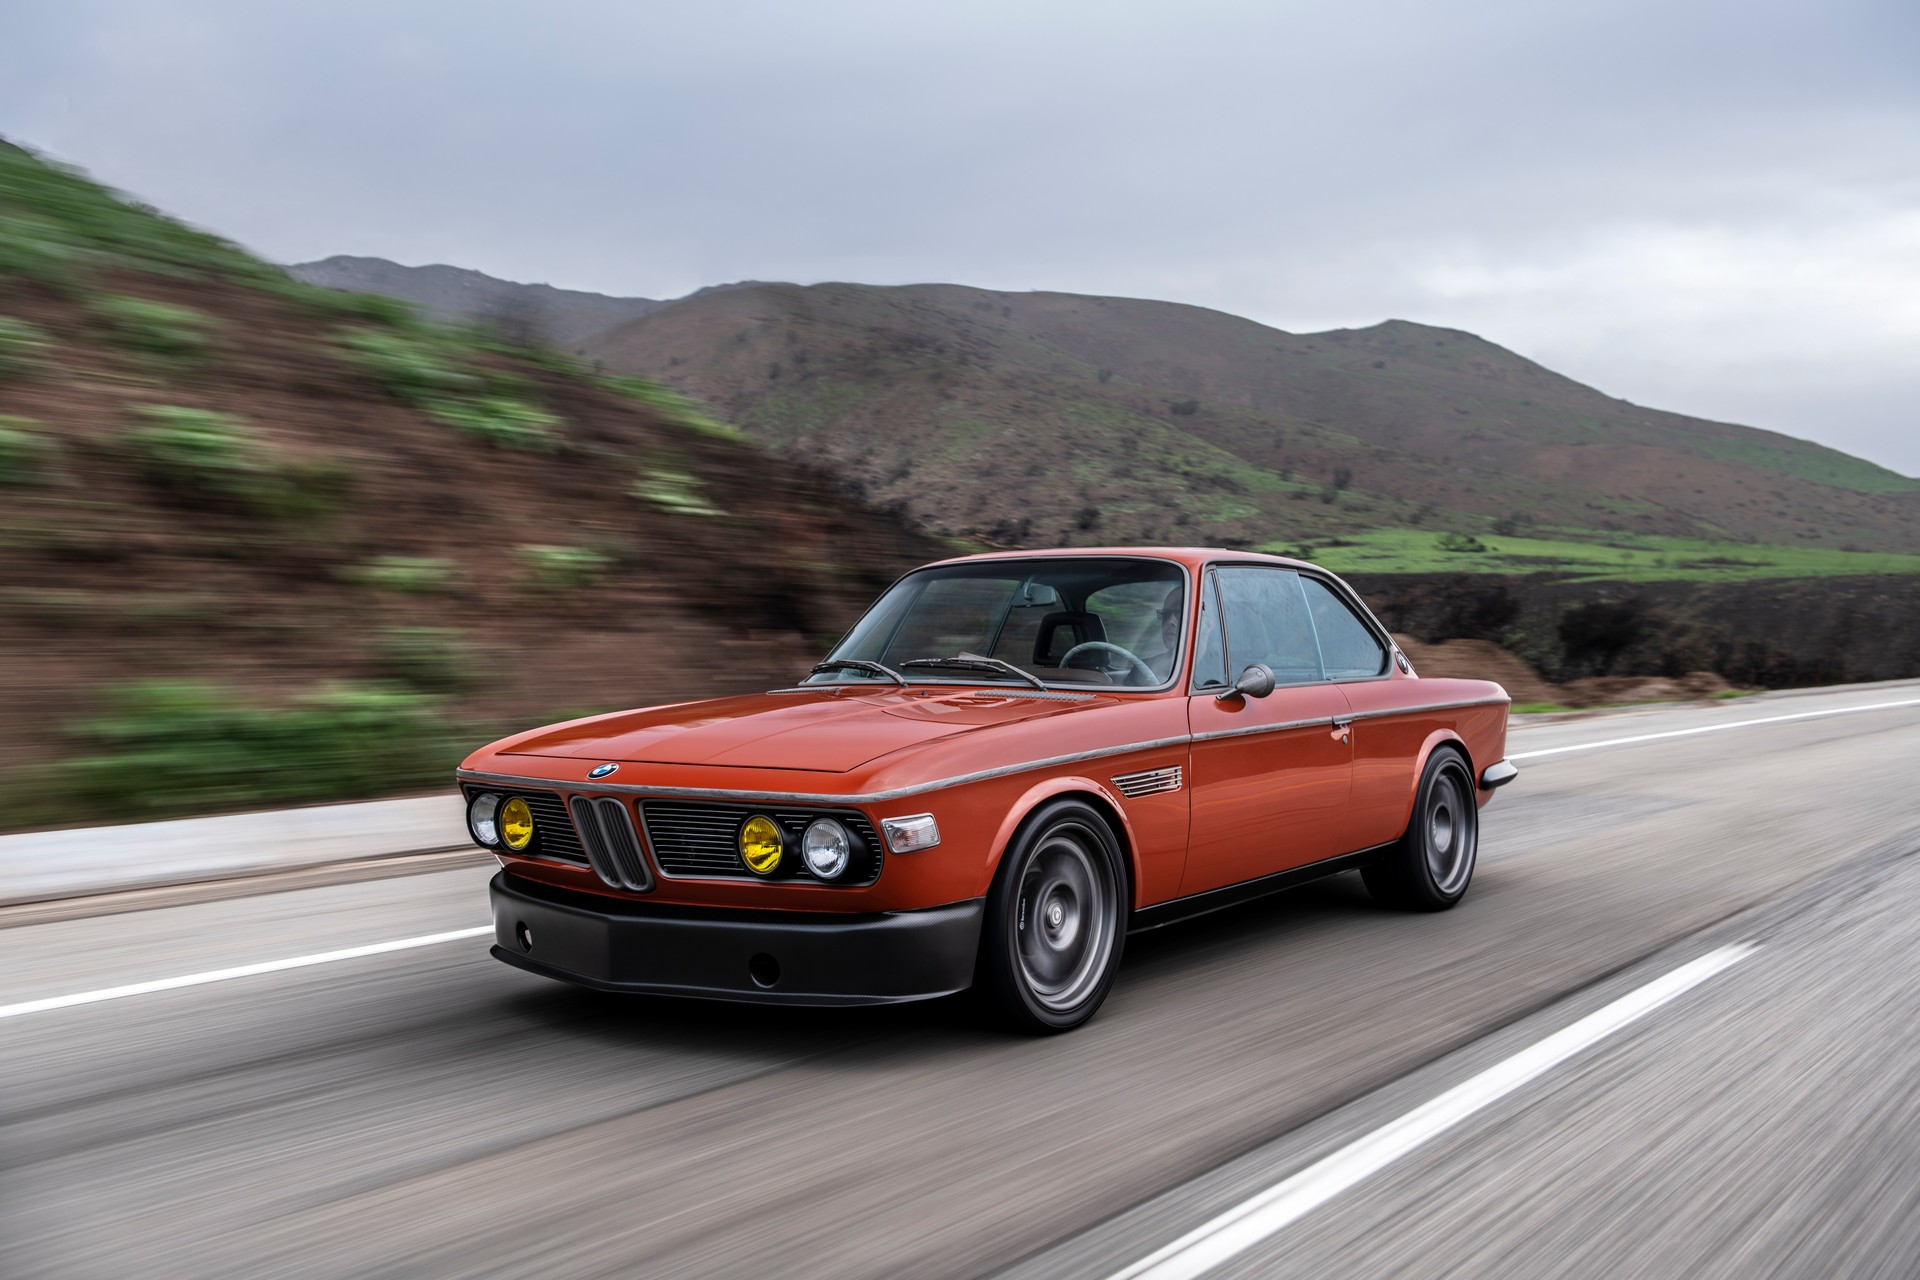 SPEEDKORE-1974-BMW-3.0-CS-2